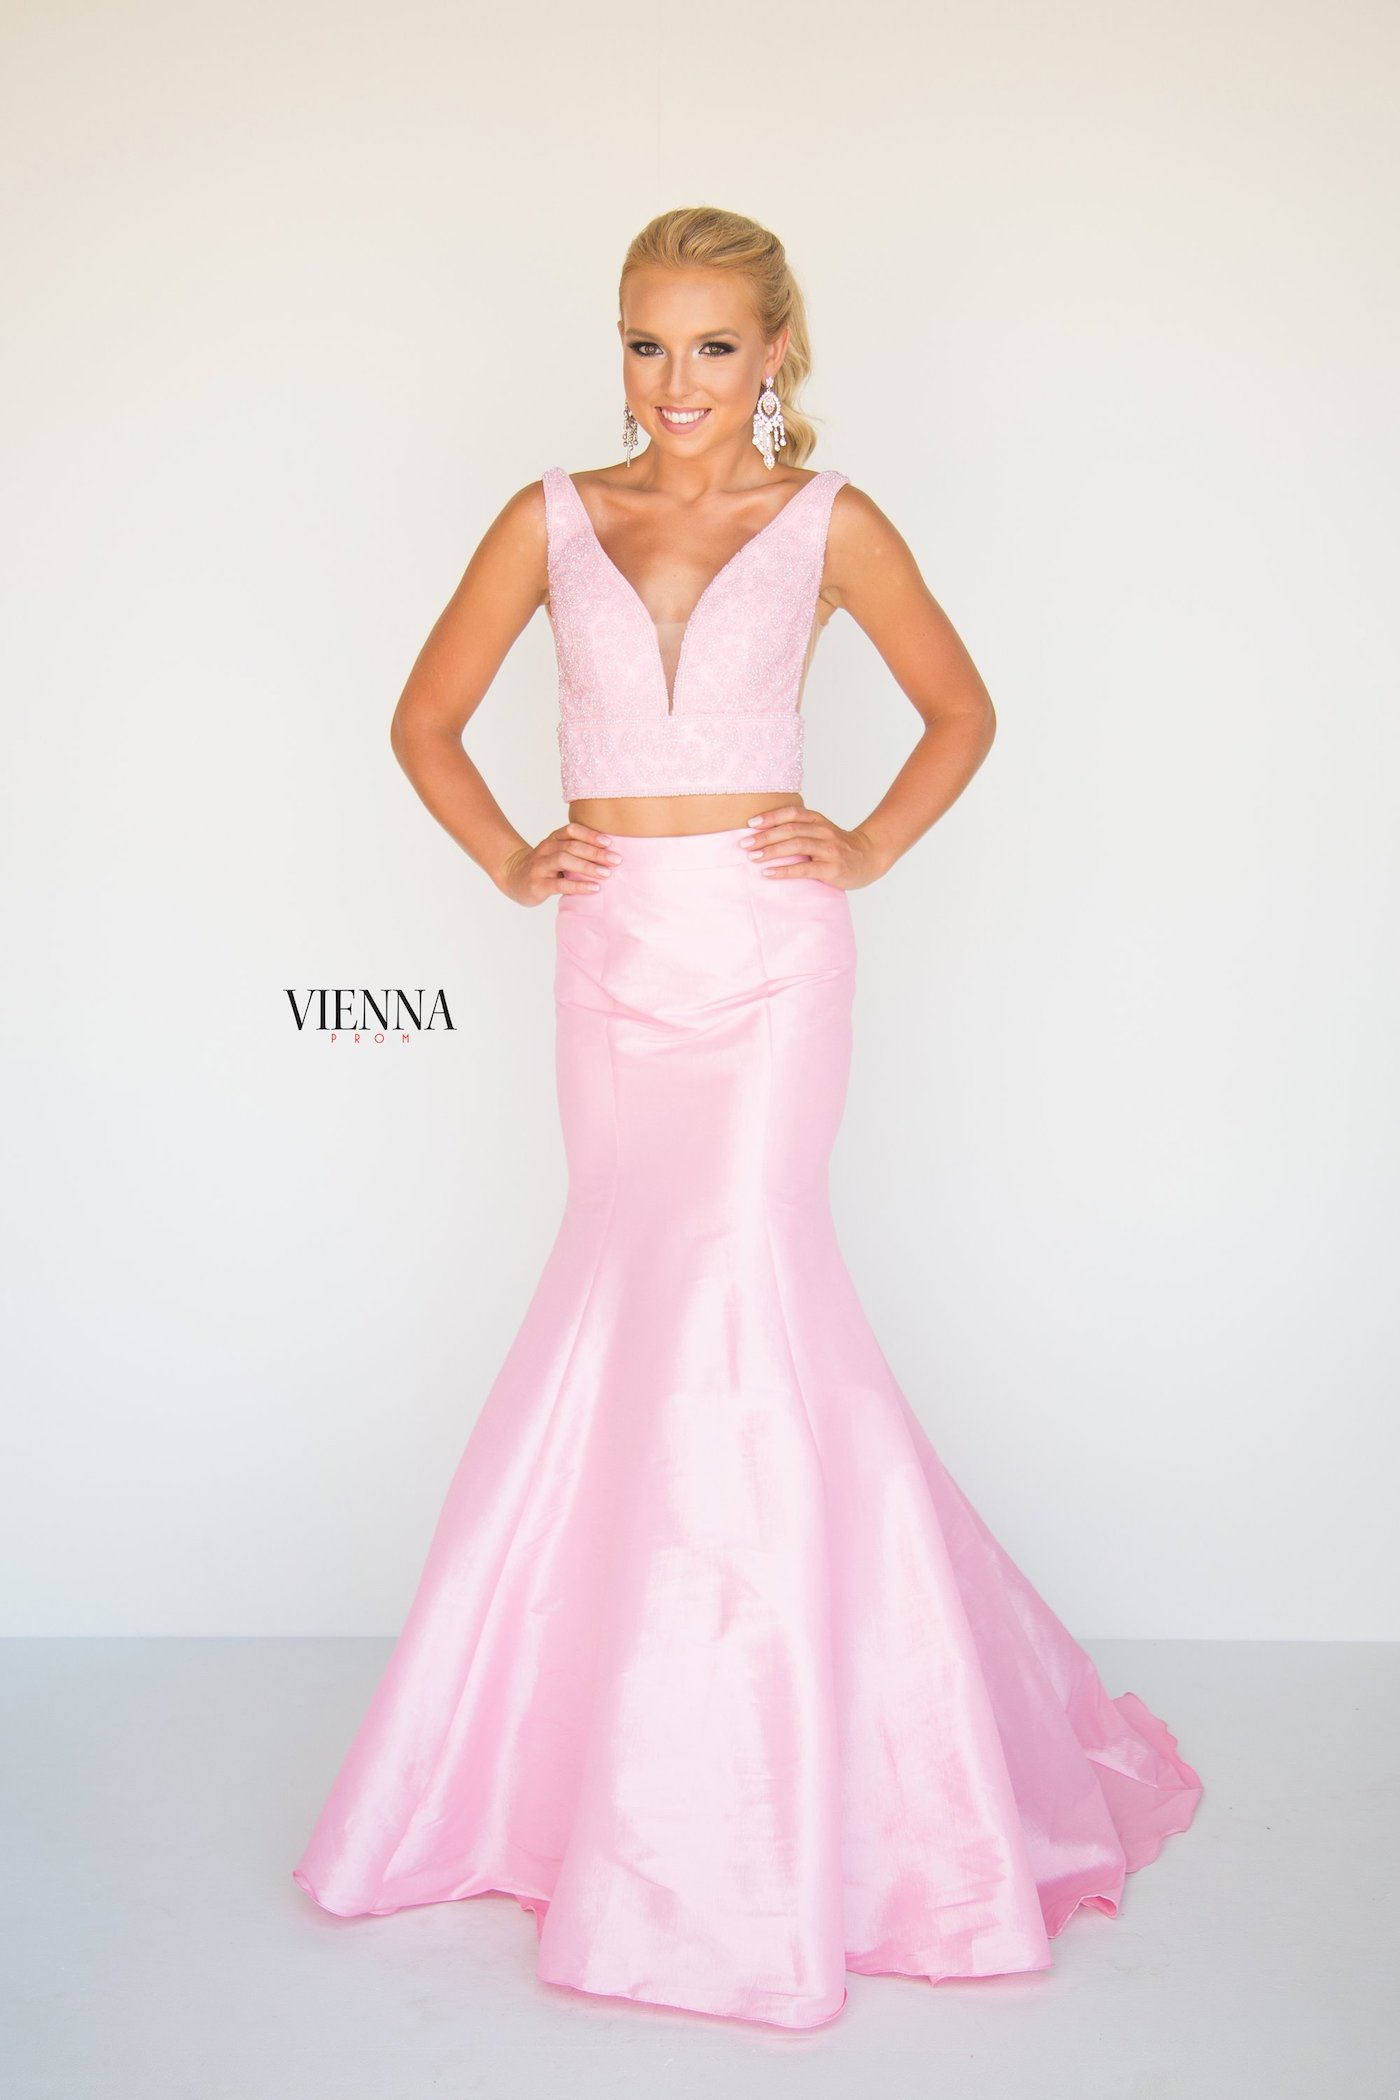 Style 8288 Vienna Pink Size 16 Backless Tall Height Mermaid Dress on Queenly